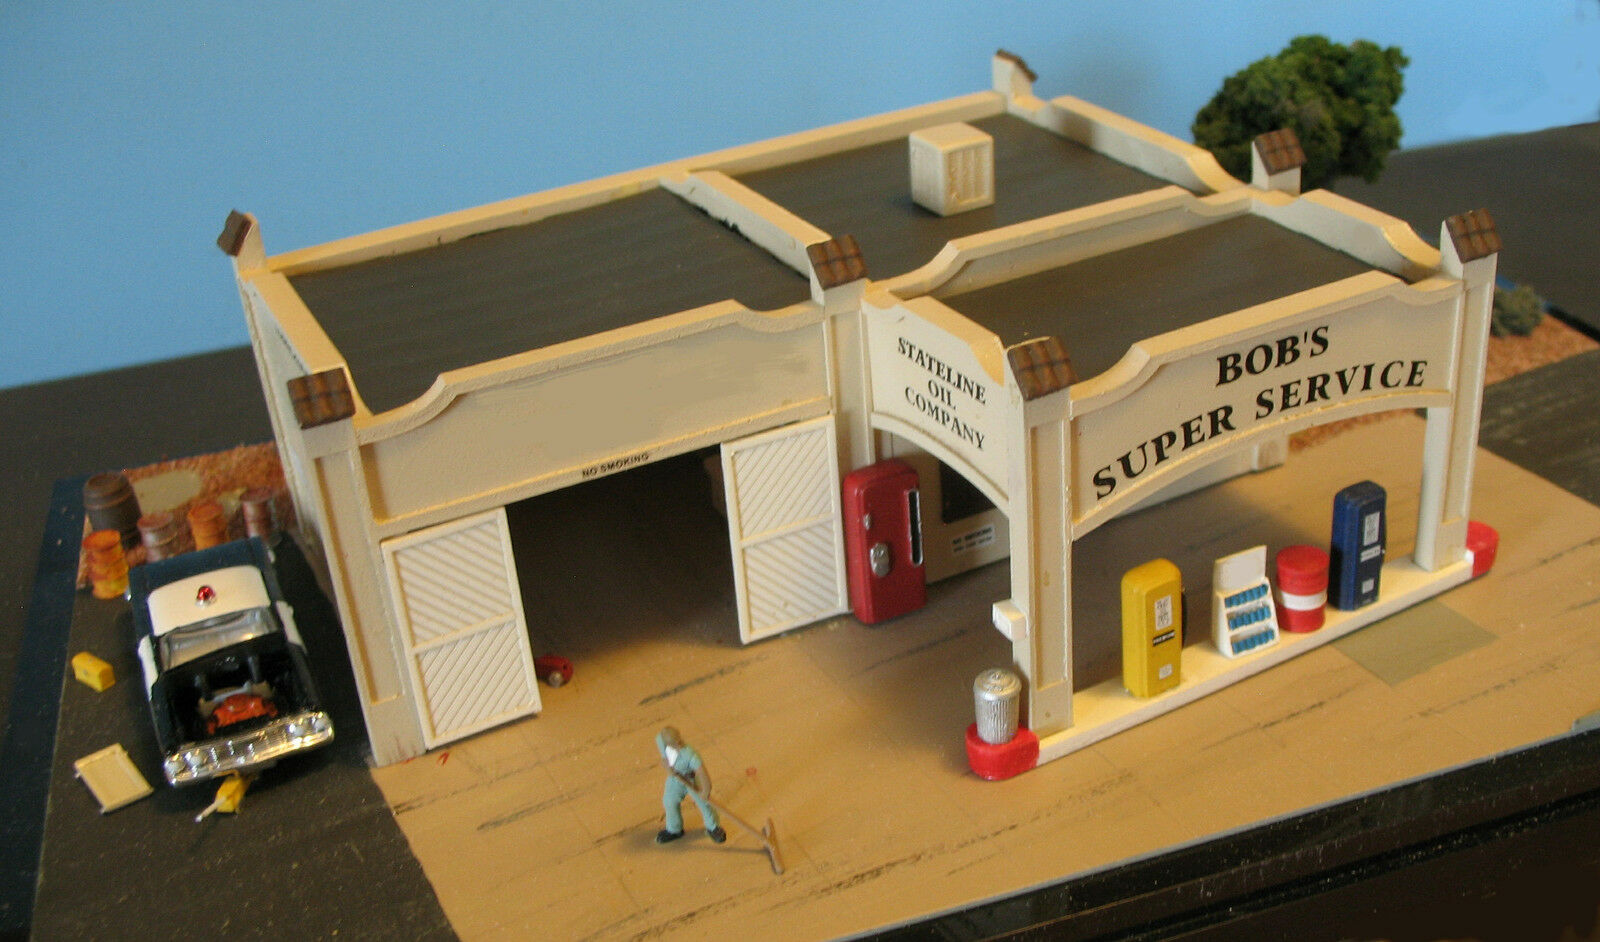 BOB'S SUPER SERVICE with SERVICE BAY - HO-662 -Easy to build HO Scale kit